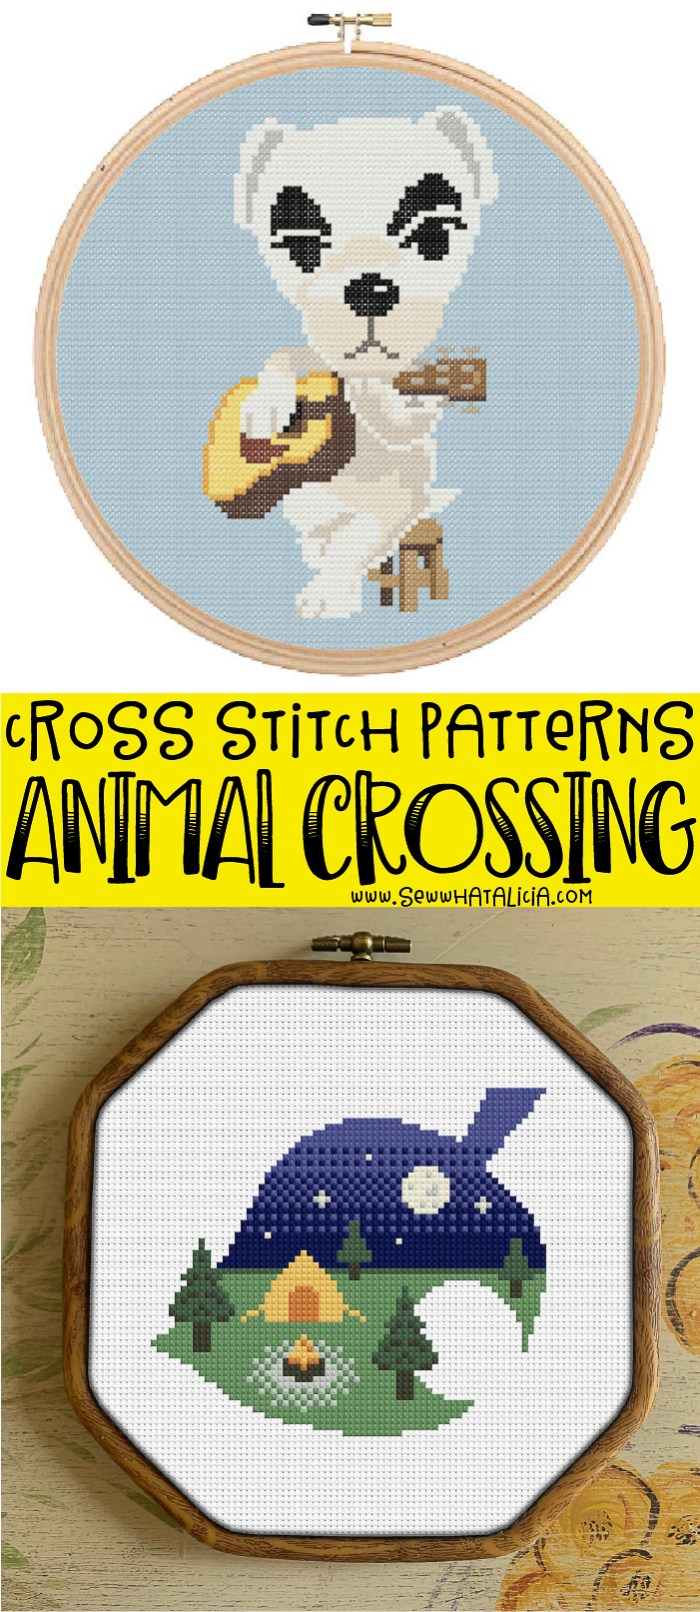 pictured two animal crossing cross stitch patterns and text overlay reading animal crossing cross stitch patterns